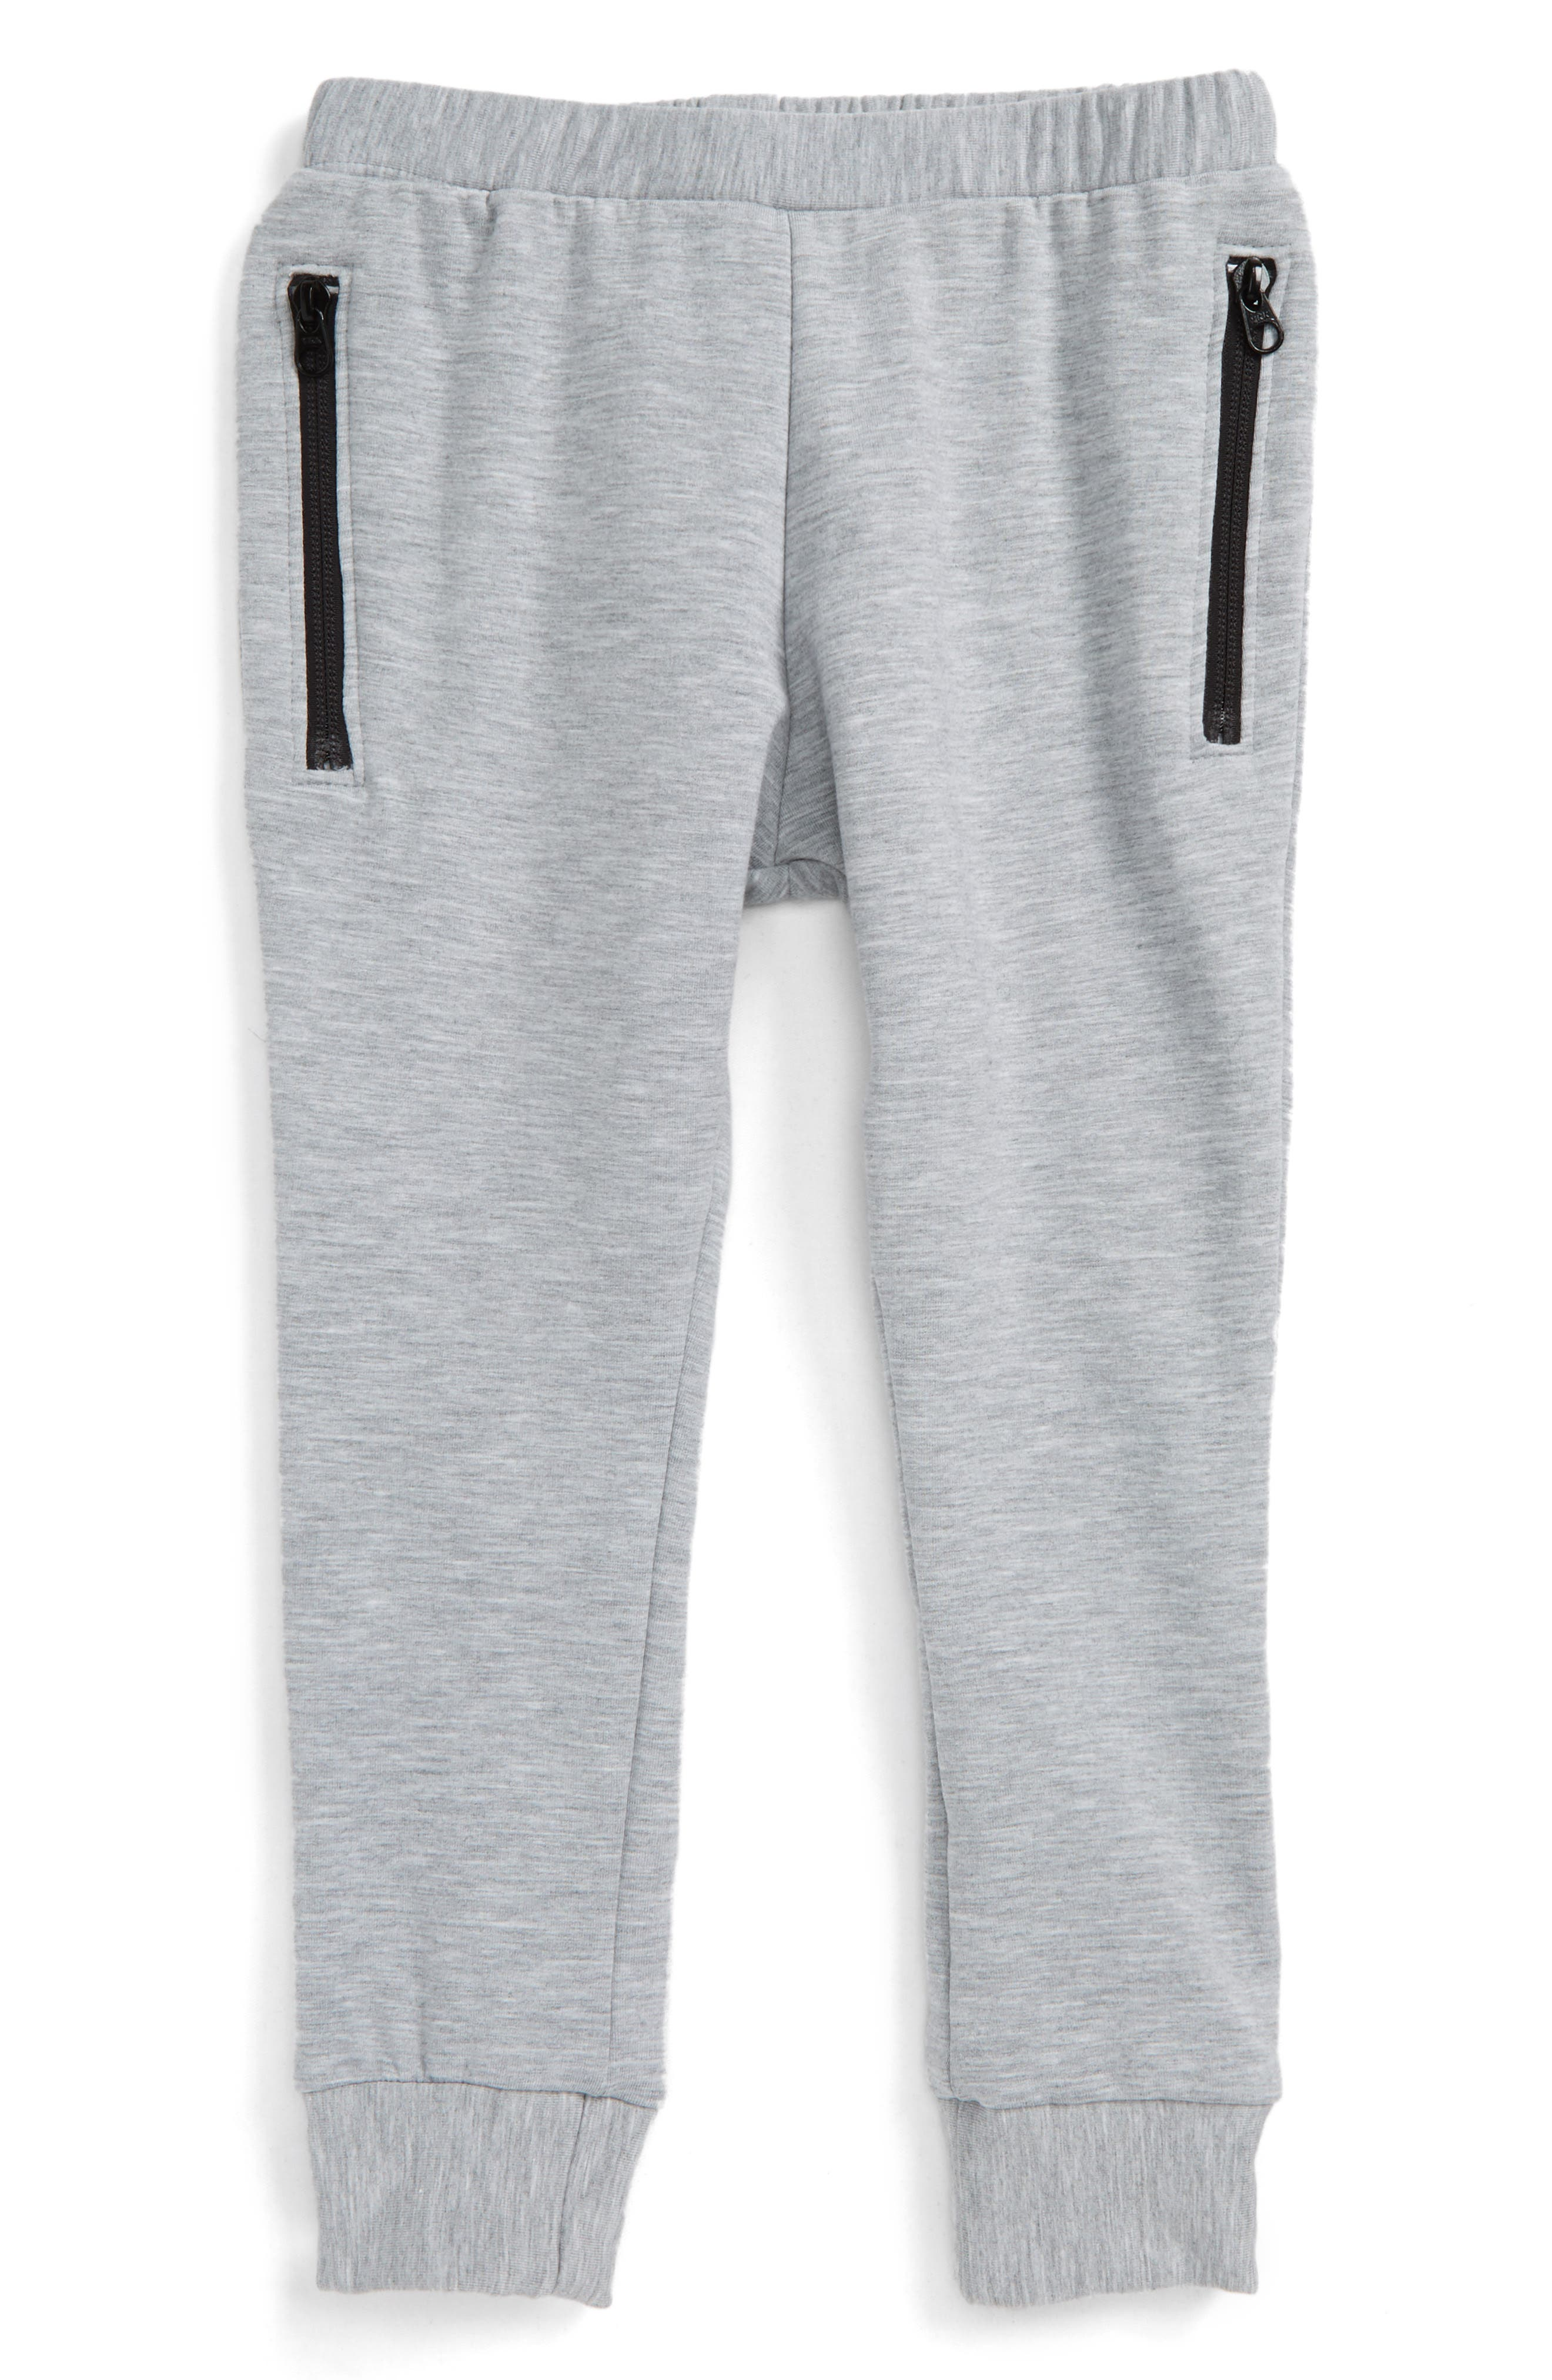 Philips Sweatpants,                         Main,                         color, 020